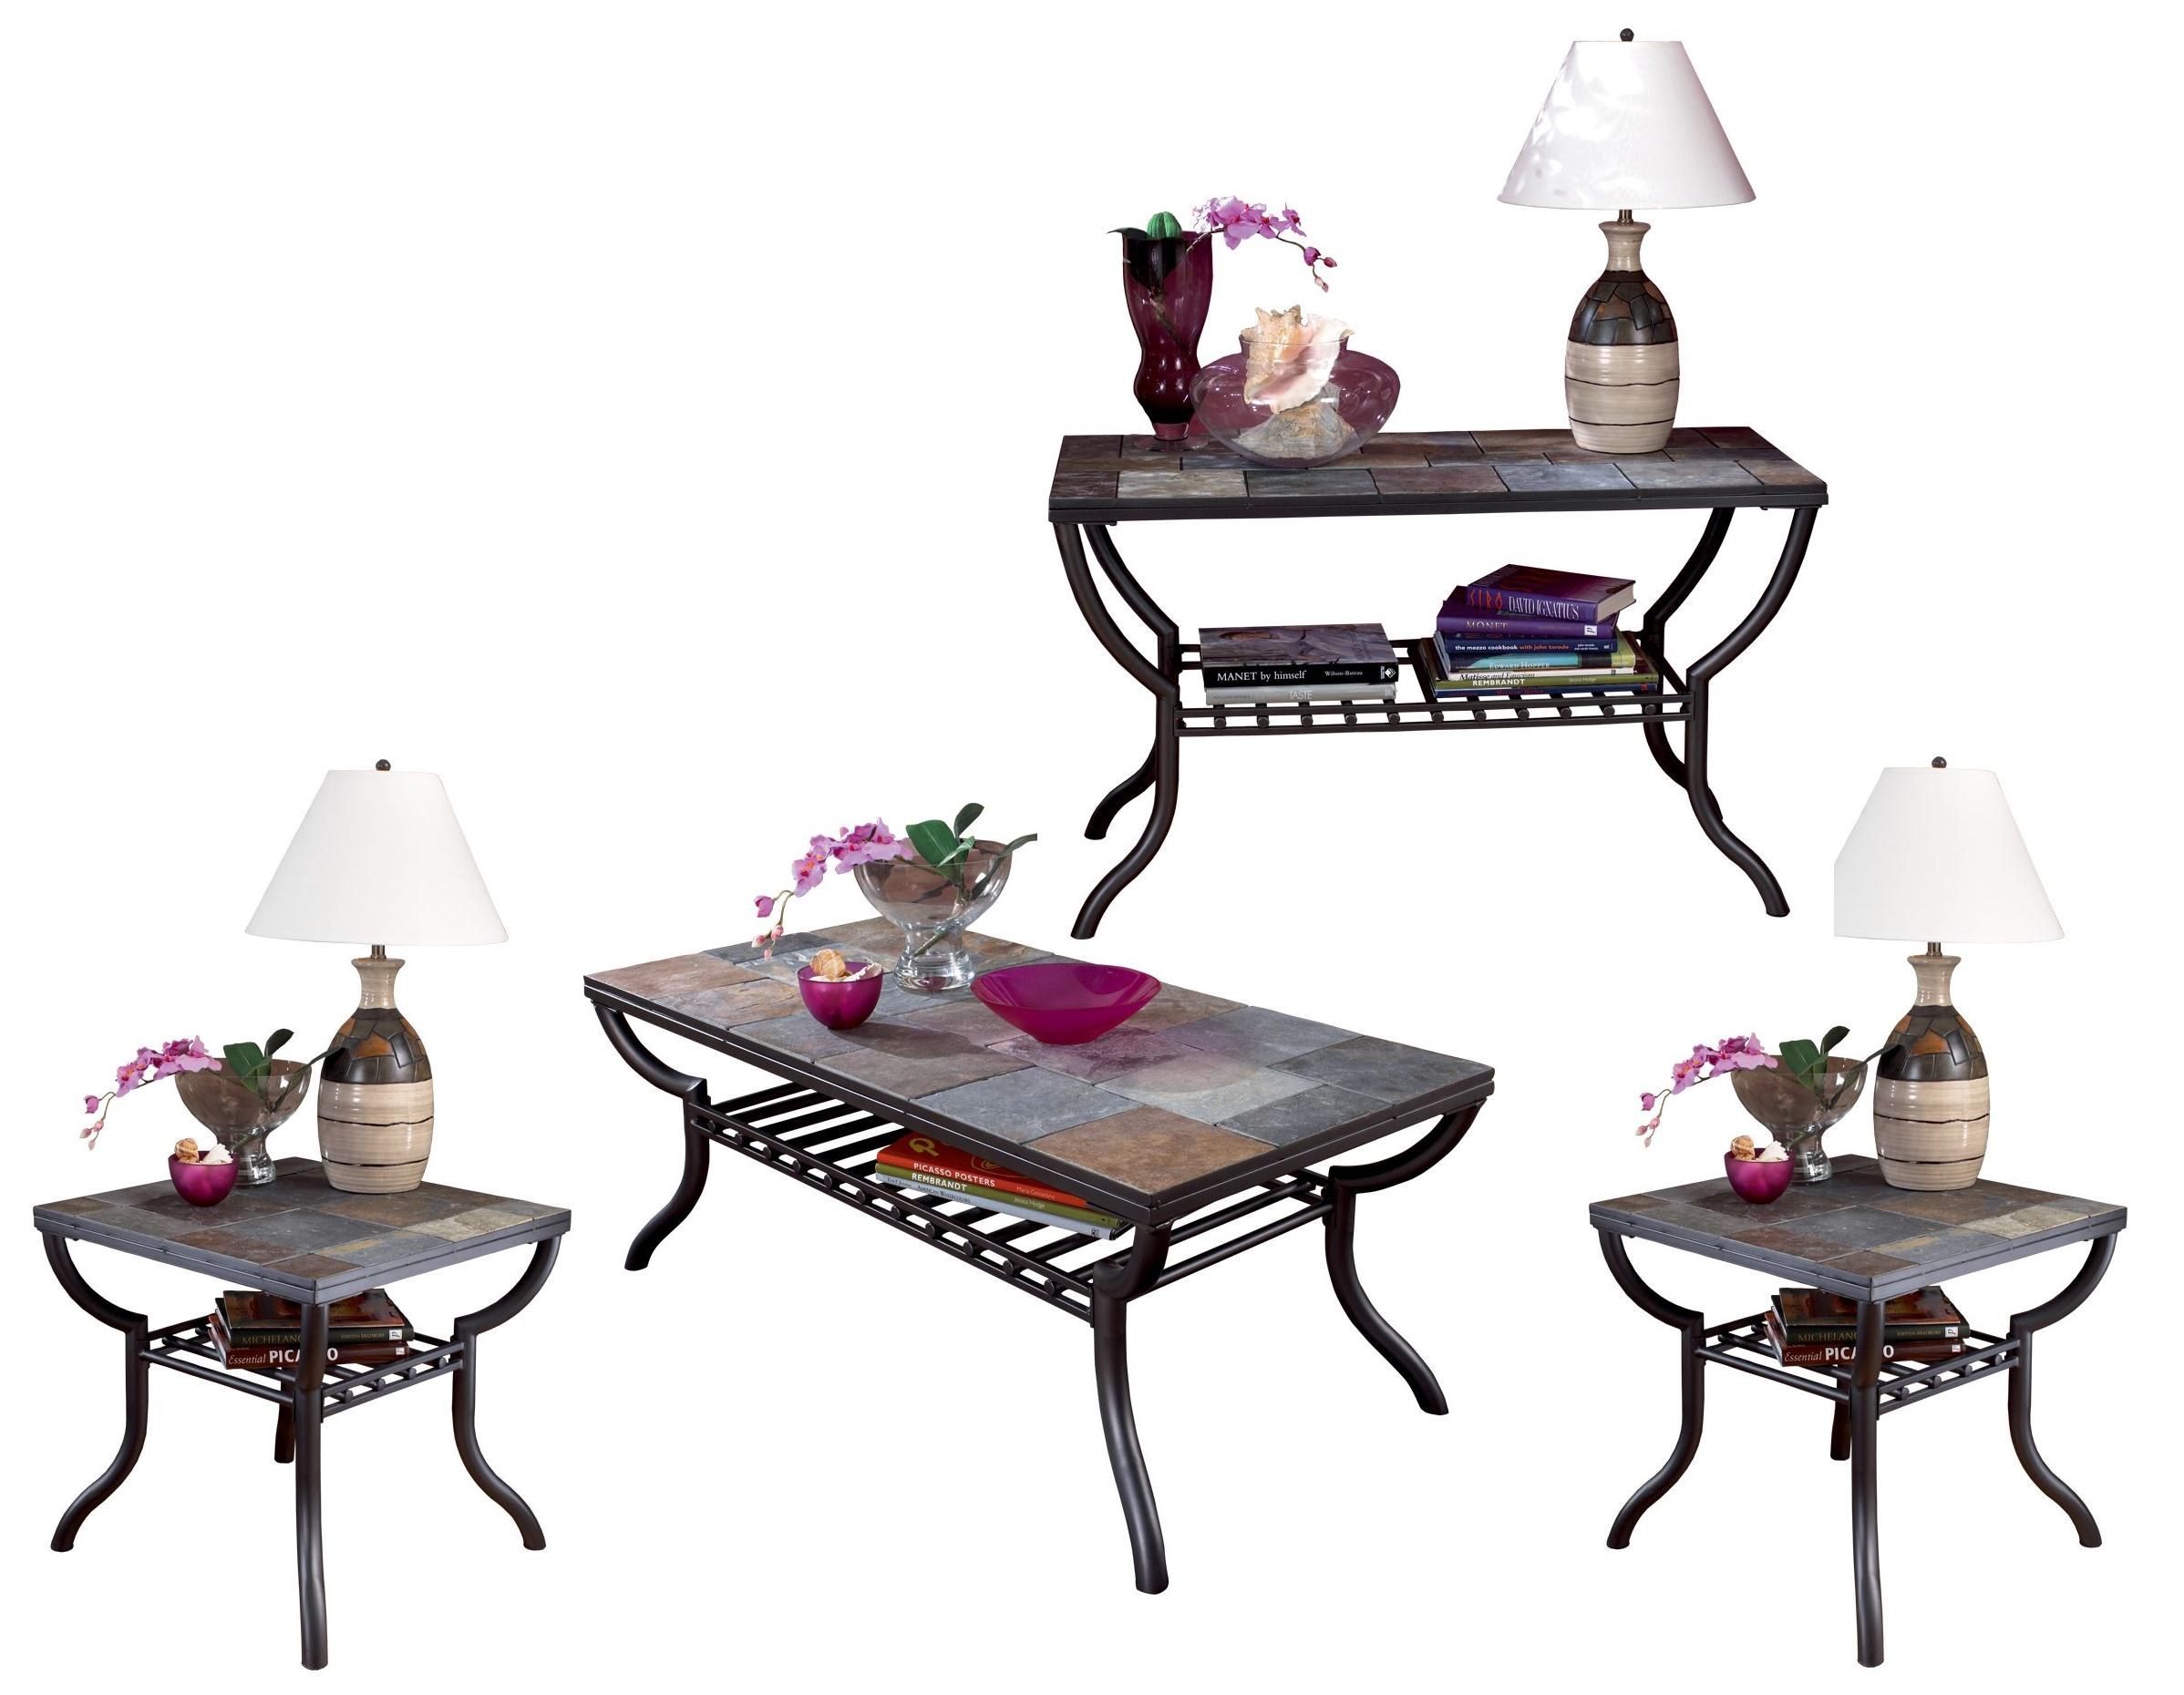 Signature Design by Ashley Antigo 4-Piece Occasional Table Set - Item Number: T233-1+2x2+4